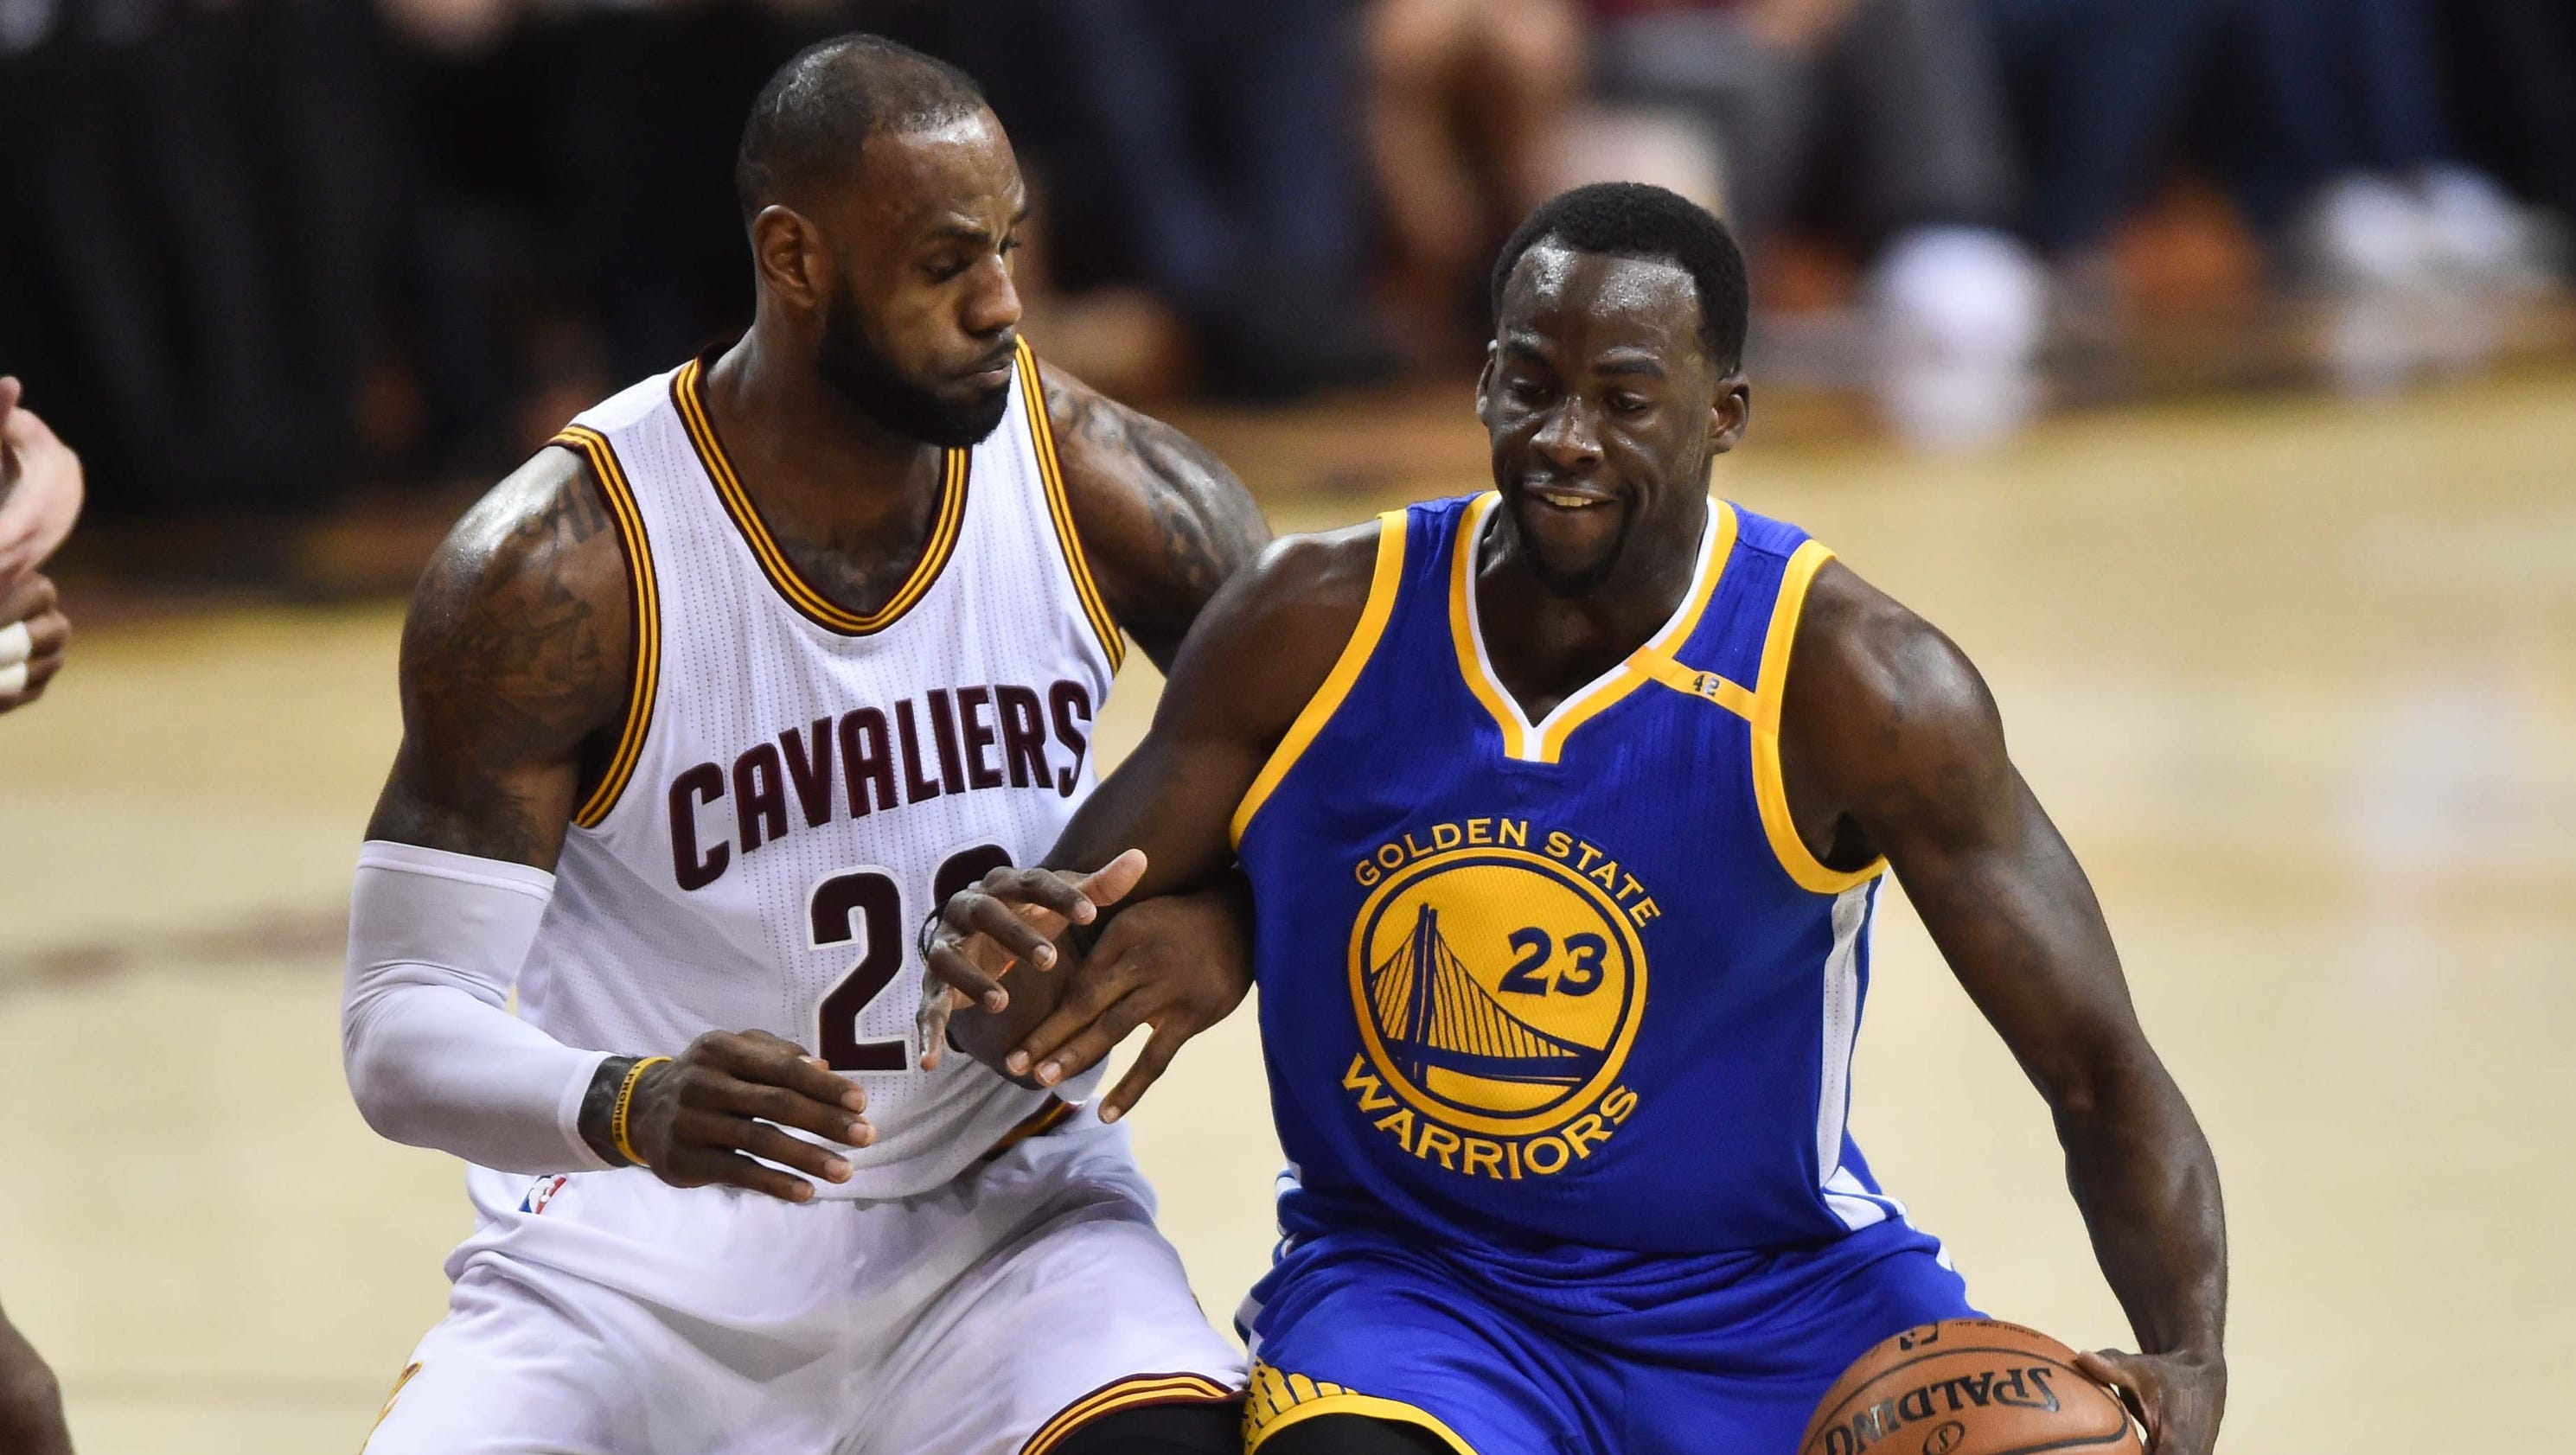 Nba Finals Abc Ratings | Basketball Scores